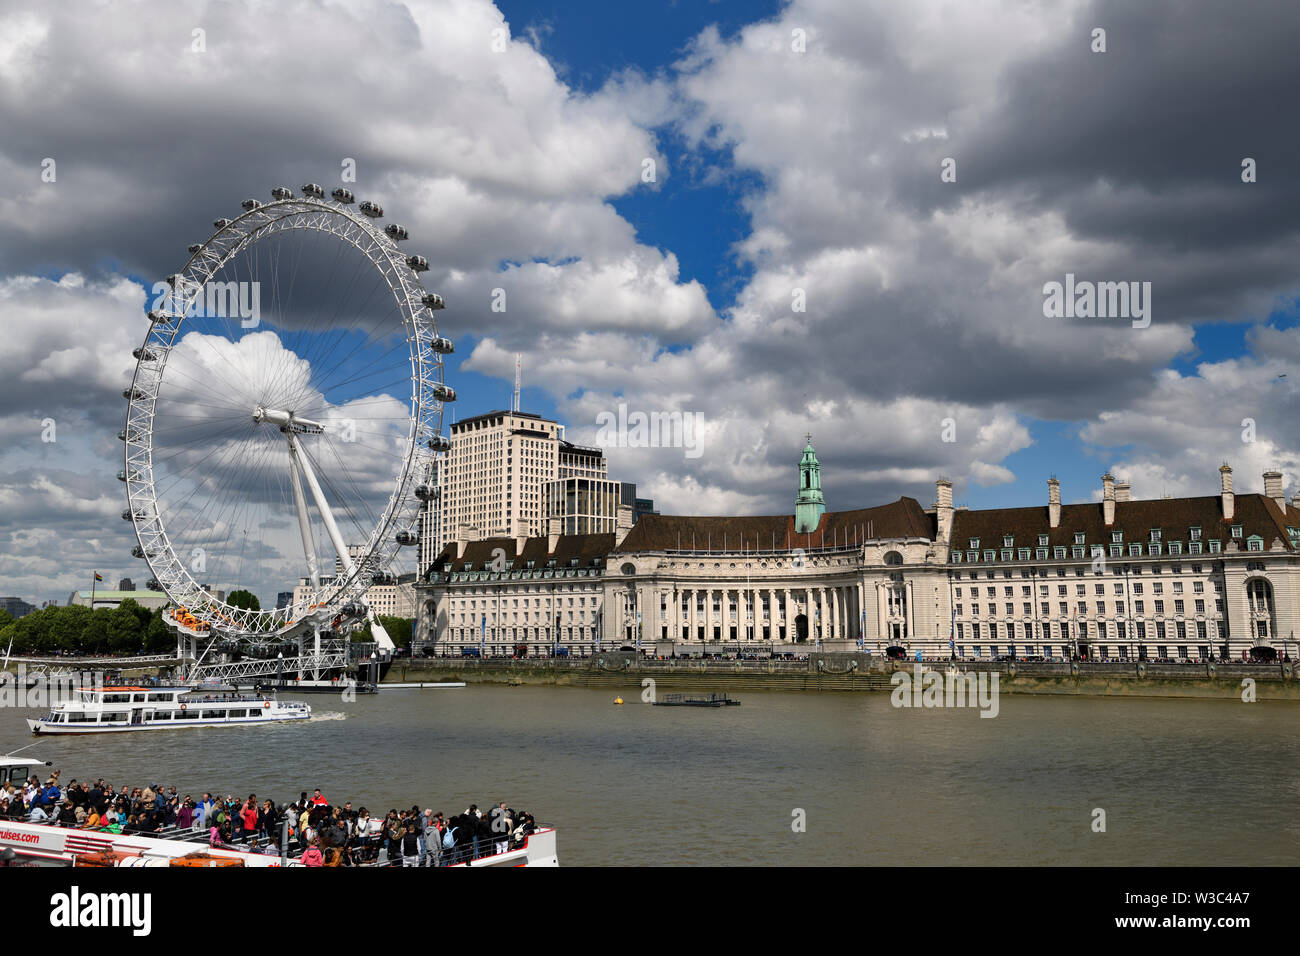 London Eye on the River Thames with tourists on tour boats and Shrek's adventure and Sea Life Centre Aquarium London England - Stock Image